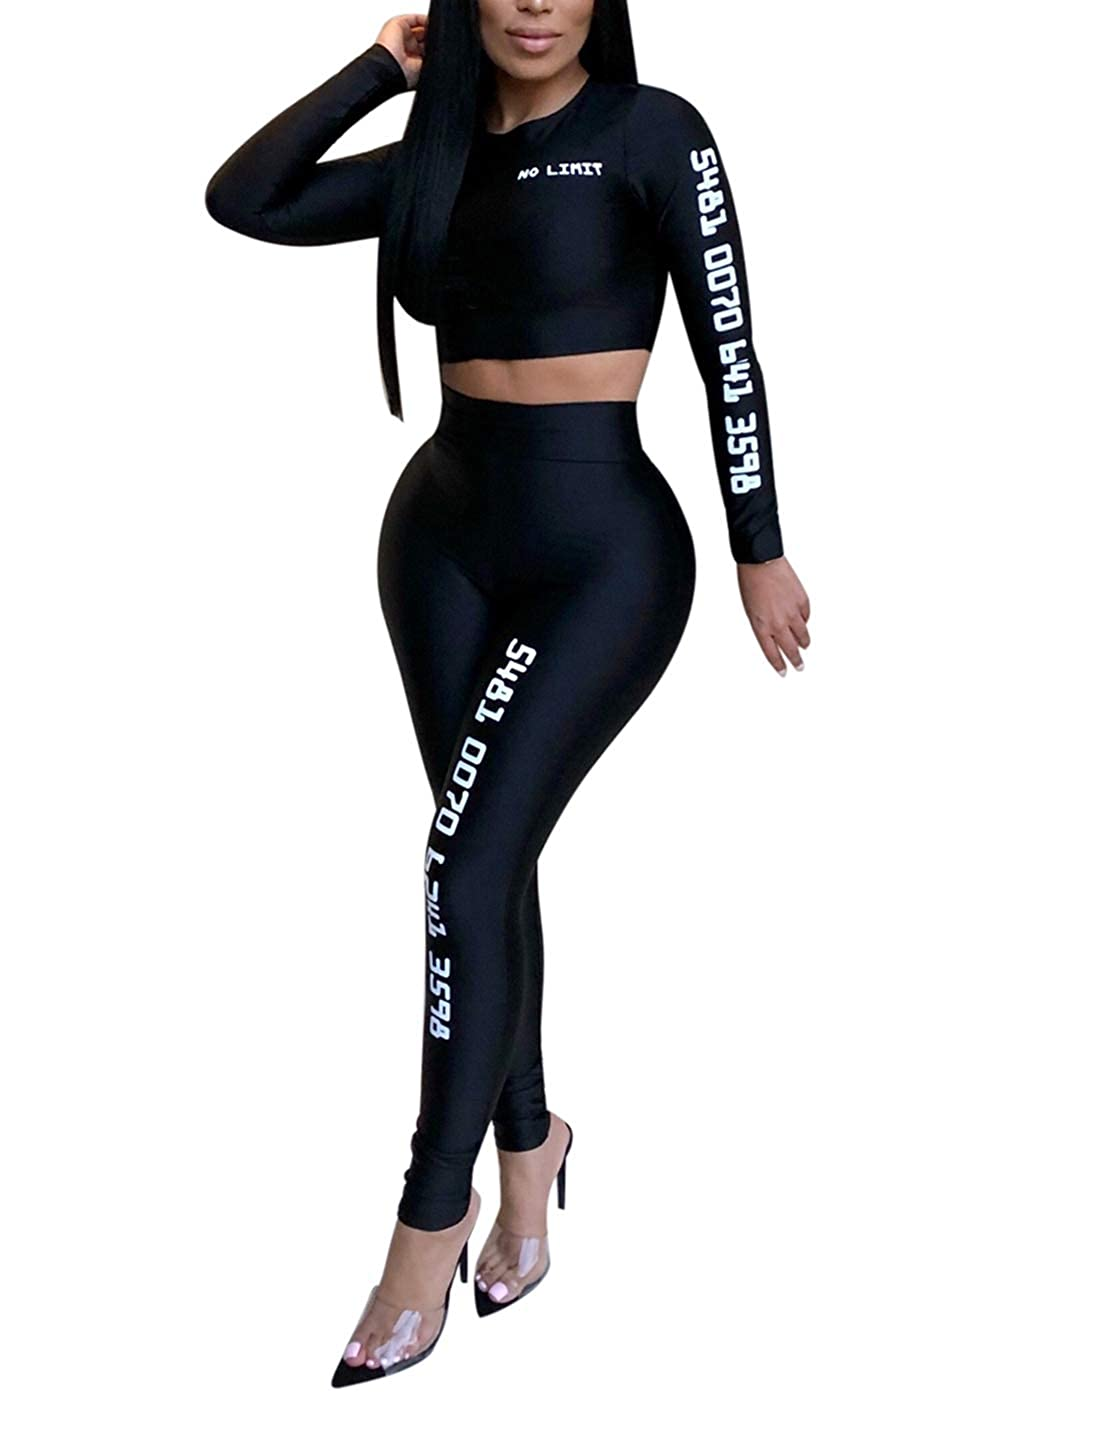 Naliha Jumpsuits for Women 2 Pieces Suit Sport Workout Jumpsuit and Rompers